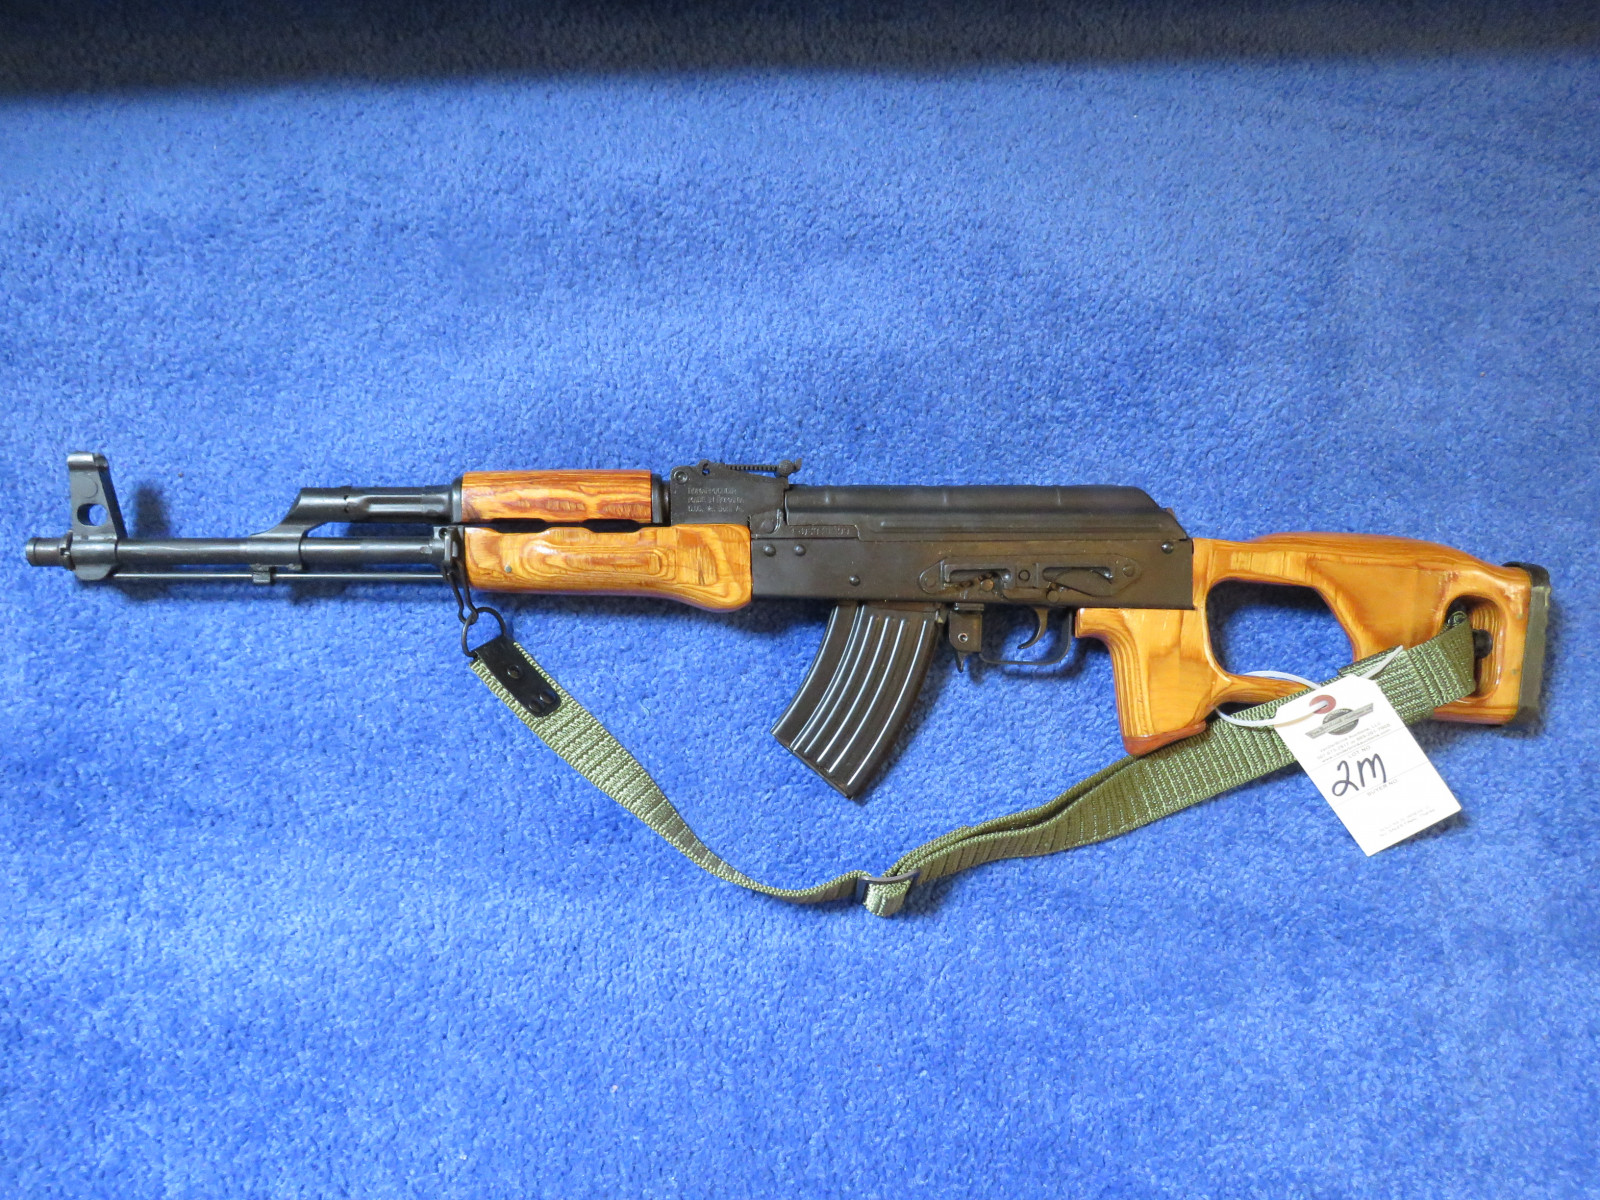 Romak 990 Semi-Automatic Rifle 7.62x39mm  1-060Z3-99 - Image 2